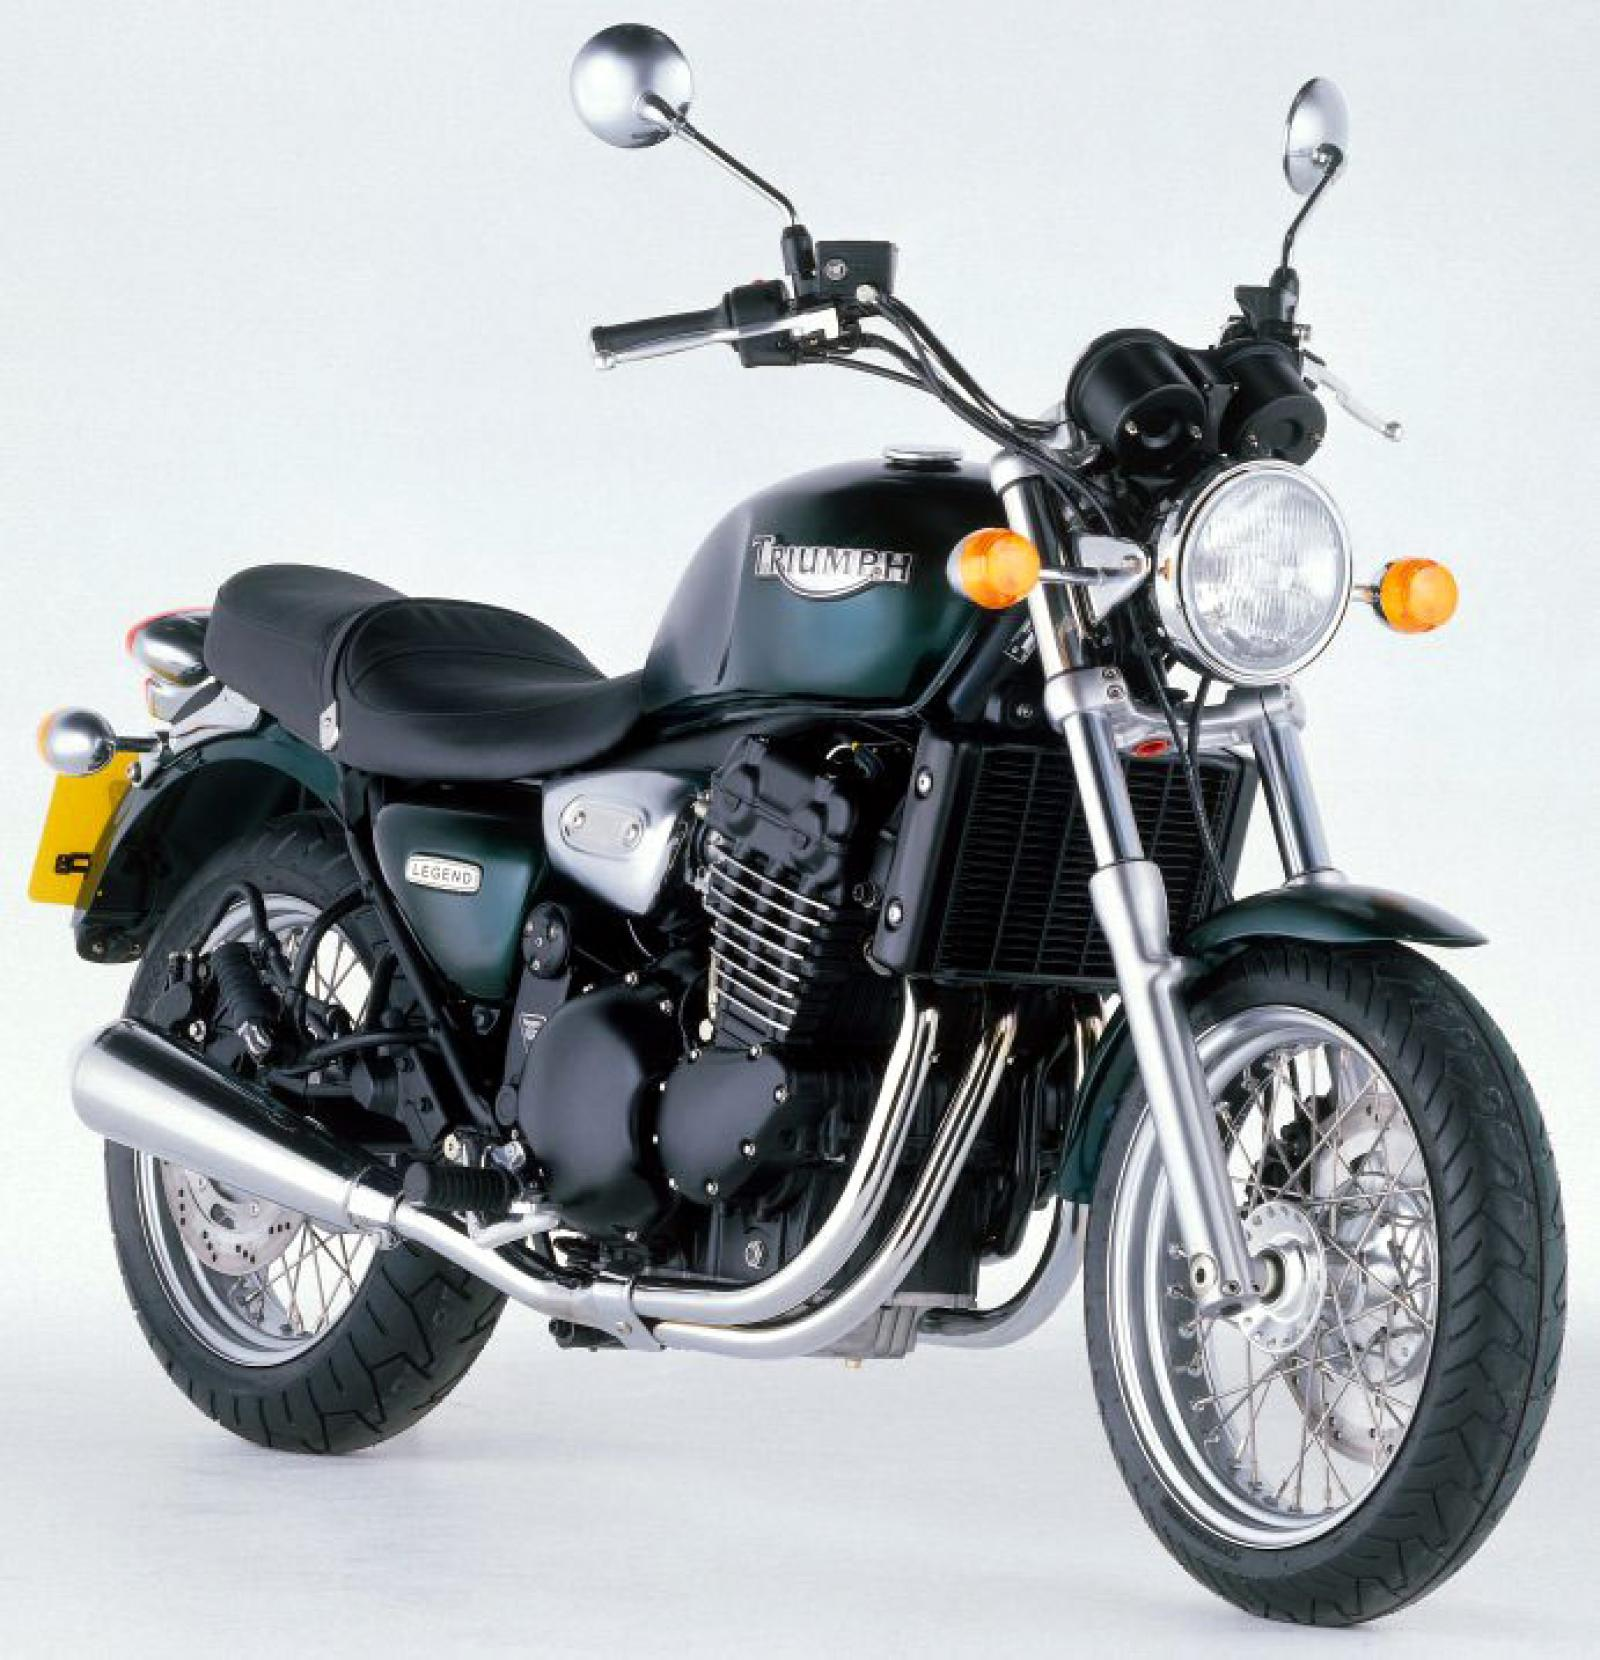 Triumph Legend TT 1999 images #159303